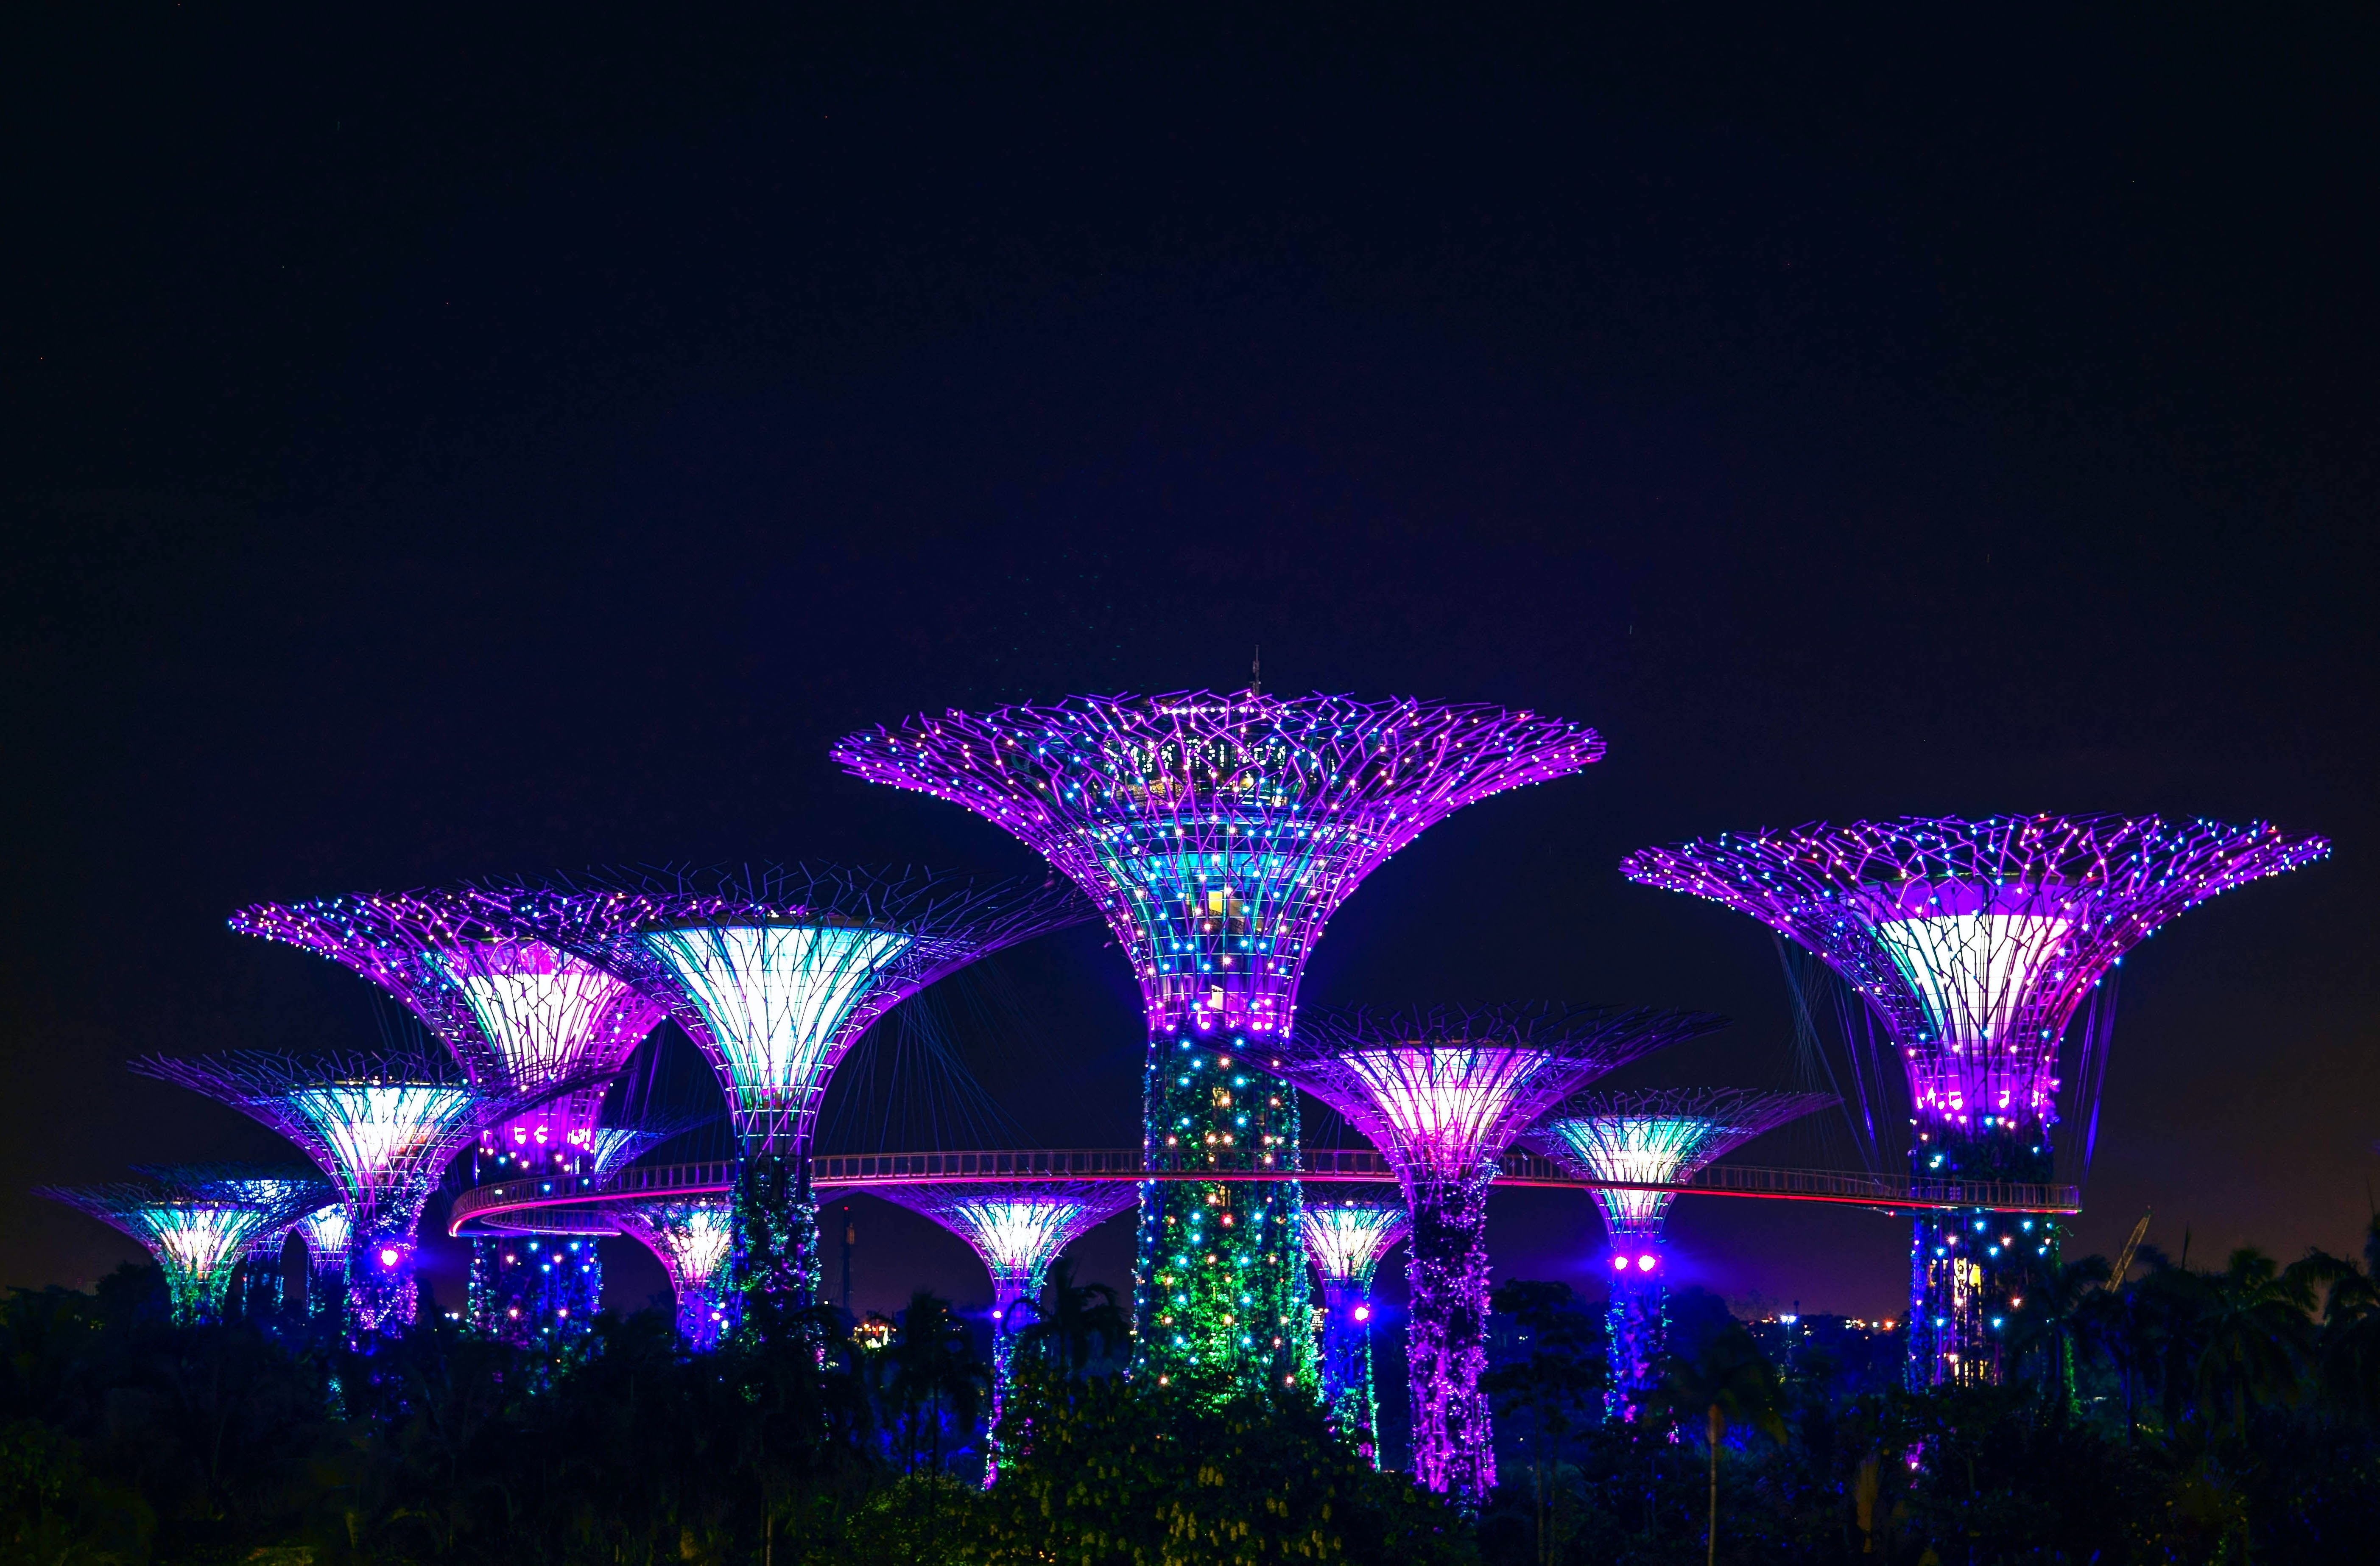 Large tree-like structures lighted up in purple at night